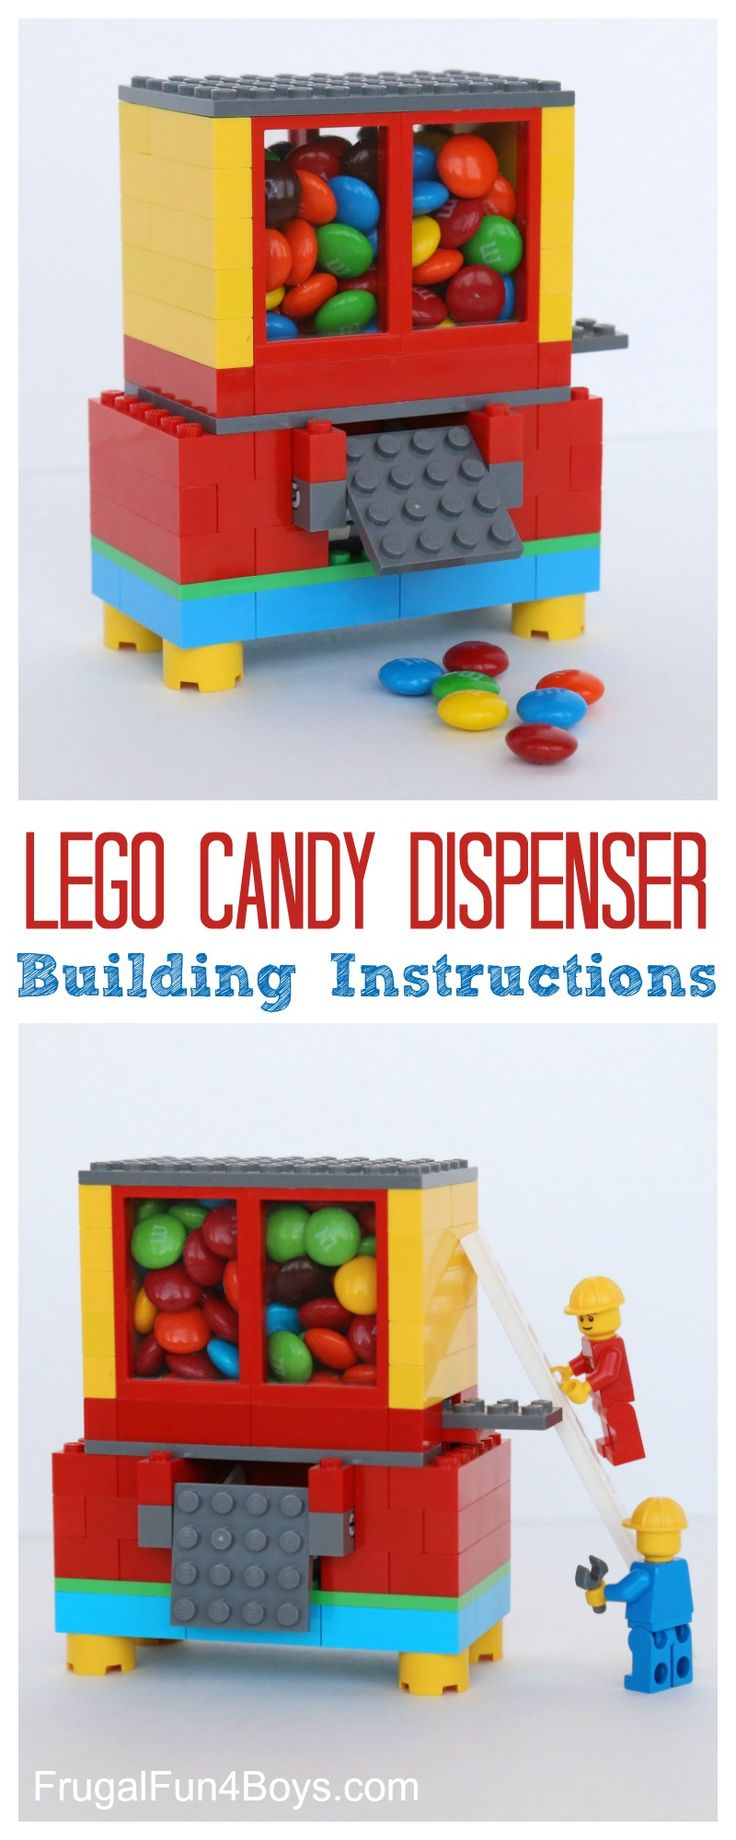 LEGO Candy Dispenser Building Instructions - Dispense M&M's or a similar candy with this working LEGO candy machine.